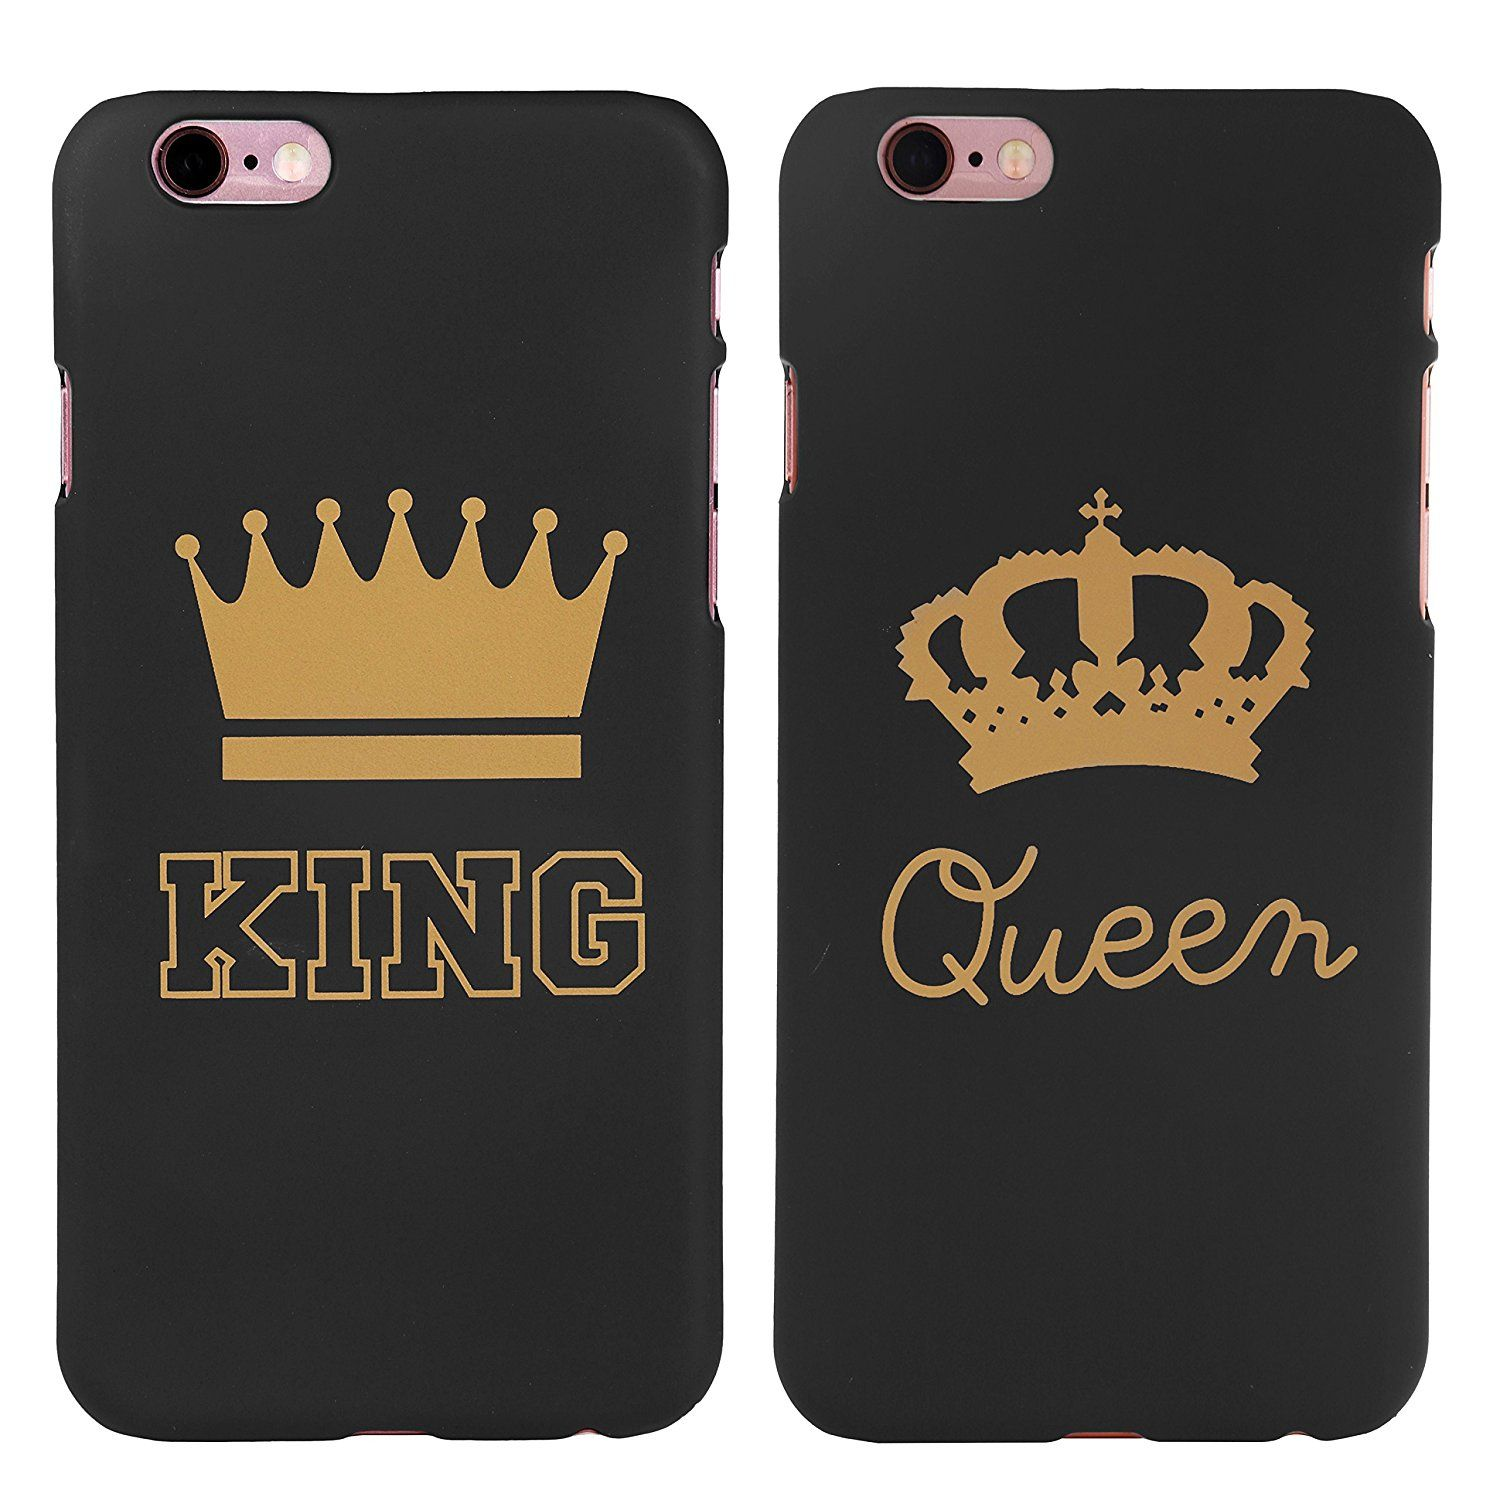 Pin On Iphone 7 Case Iphone black iphone king and queen